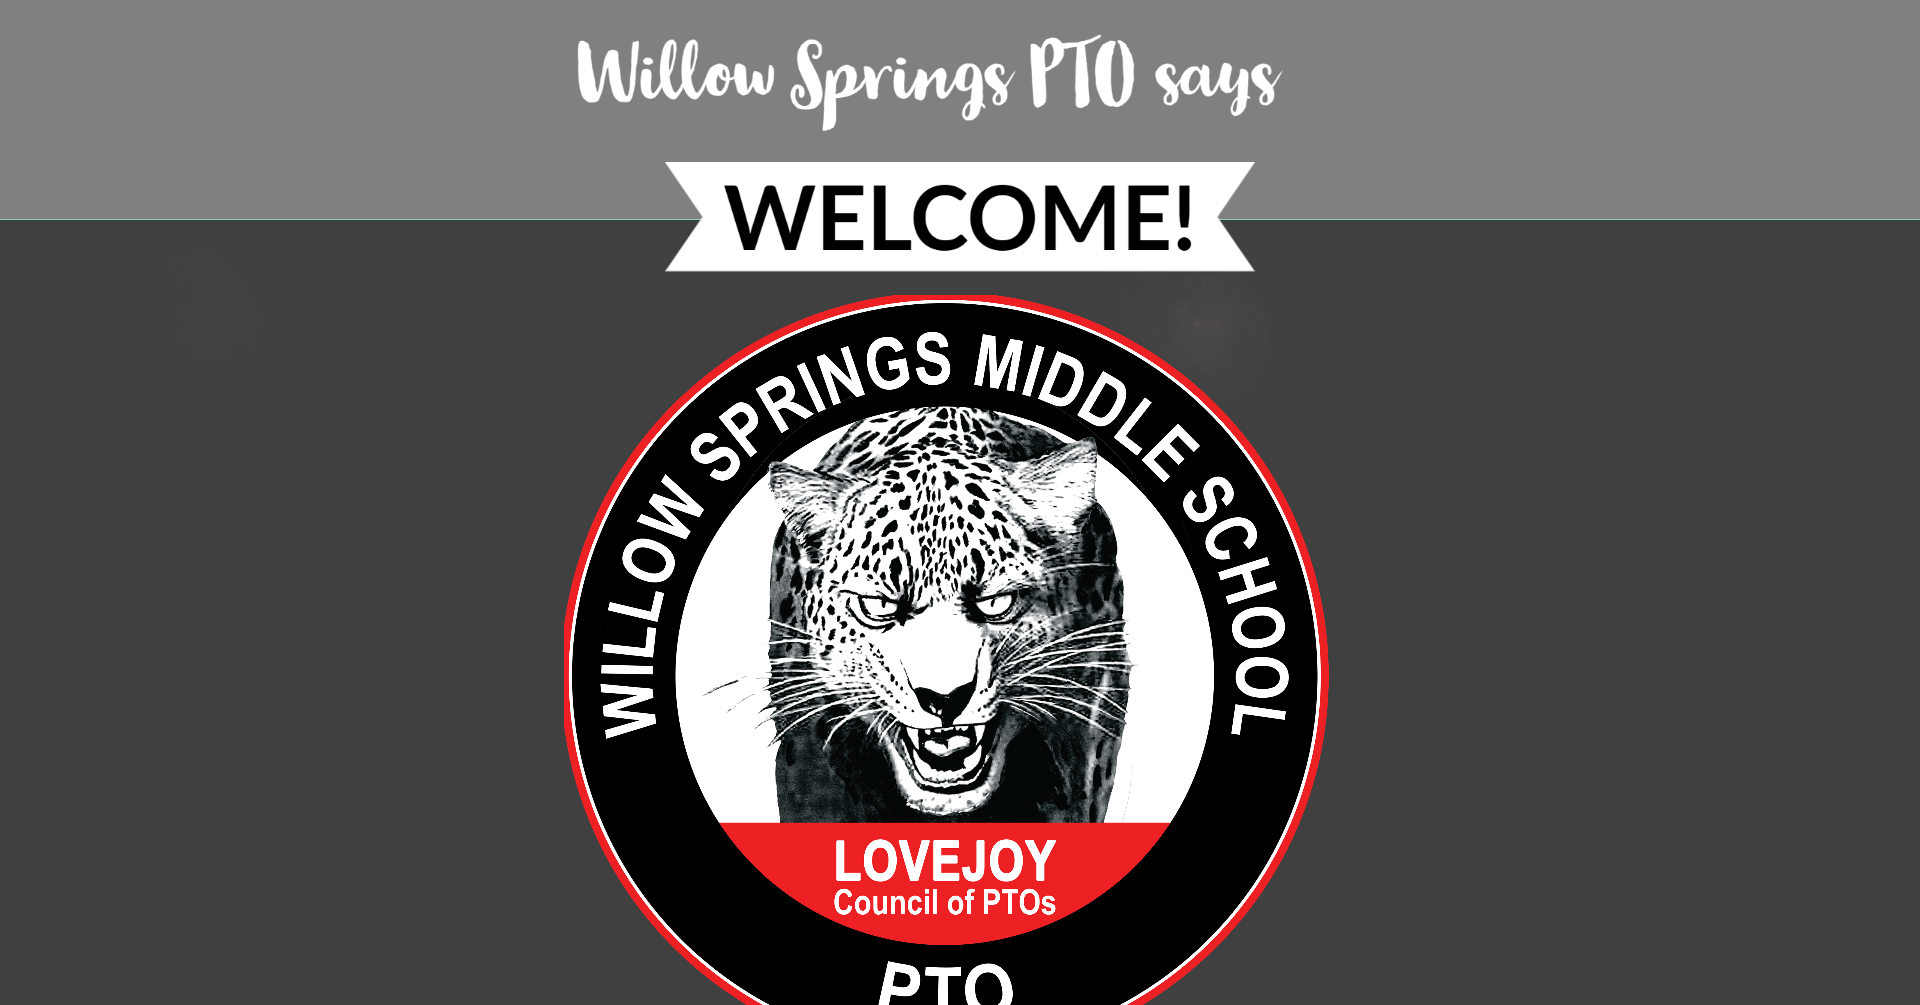 PTO says Welcome